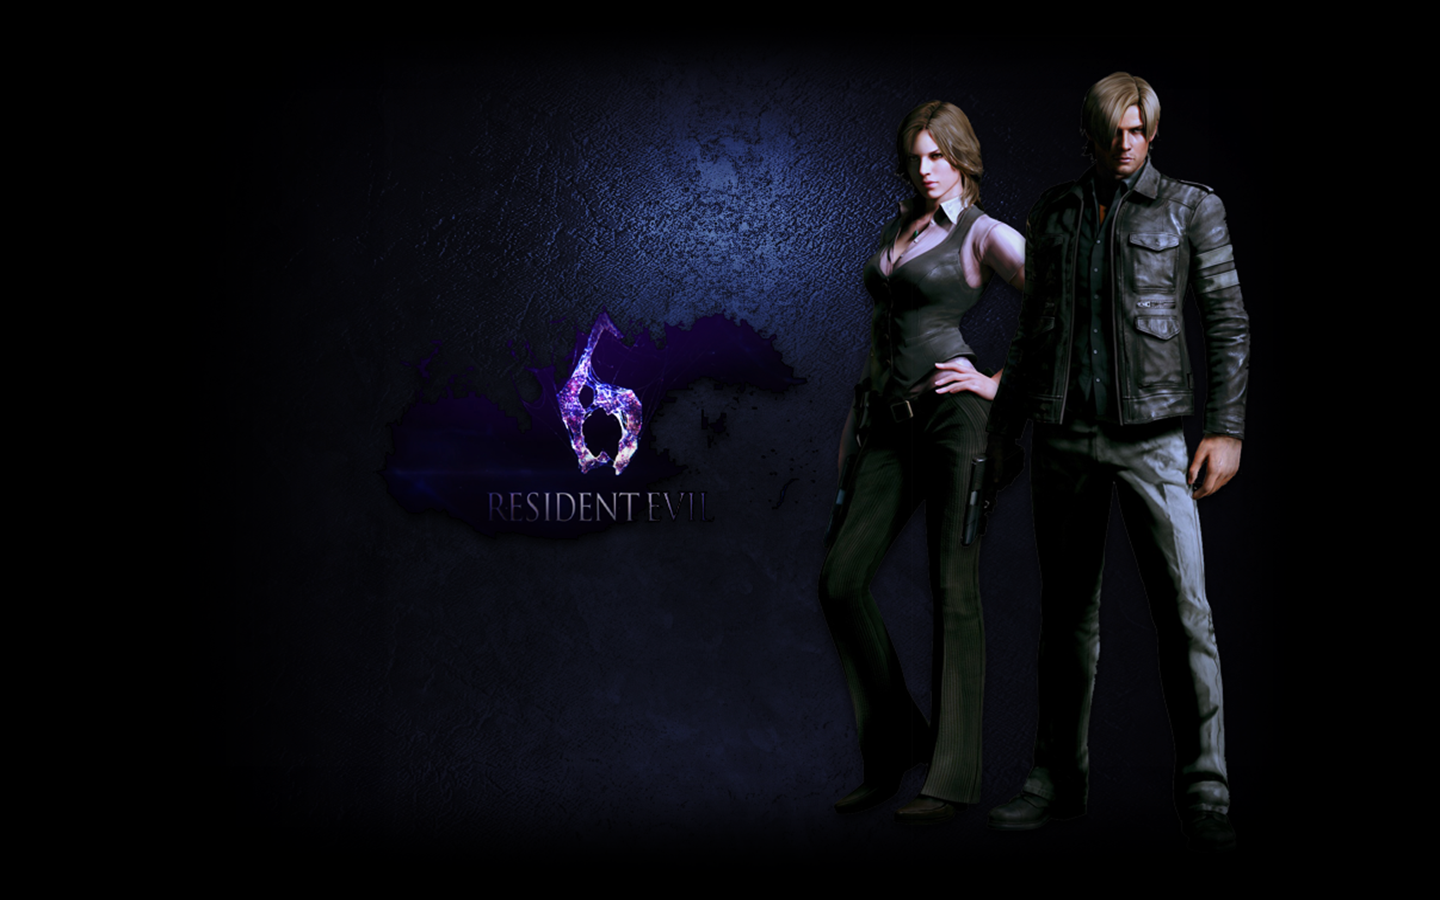 Resident Evil 6 Wallpapers HD 6691 Wallpaper